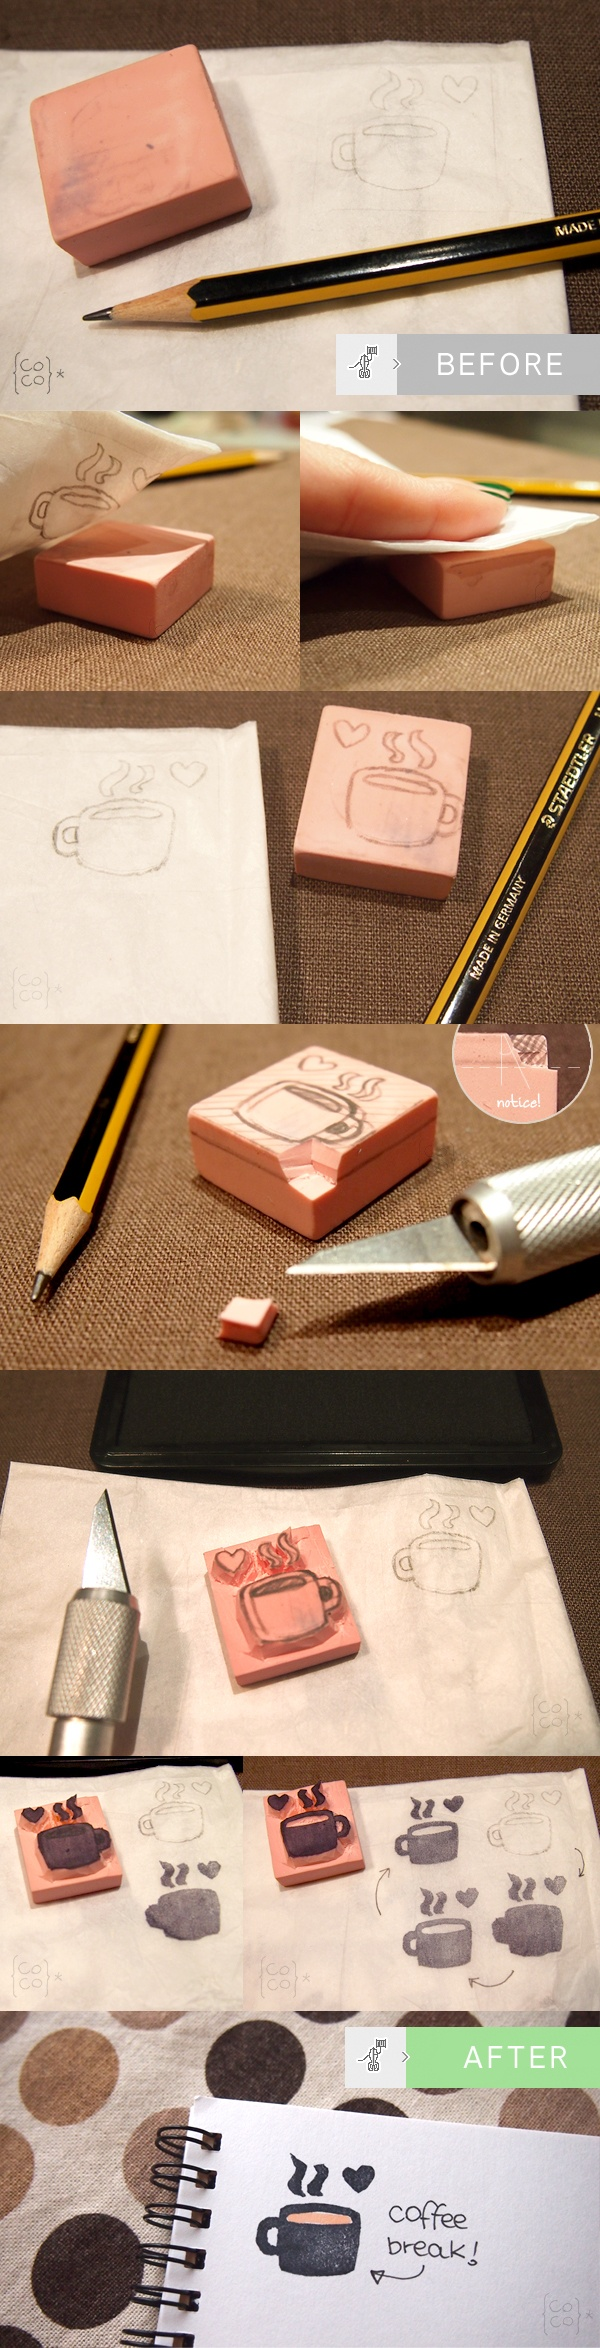 How to do Rubber Stamps!